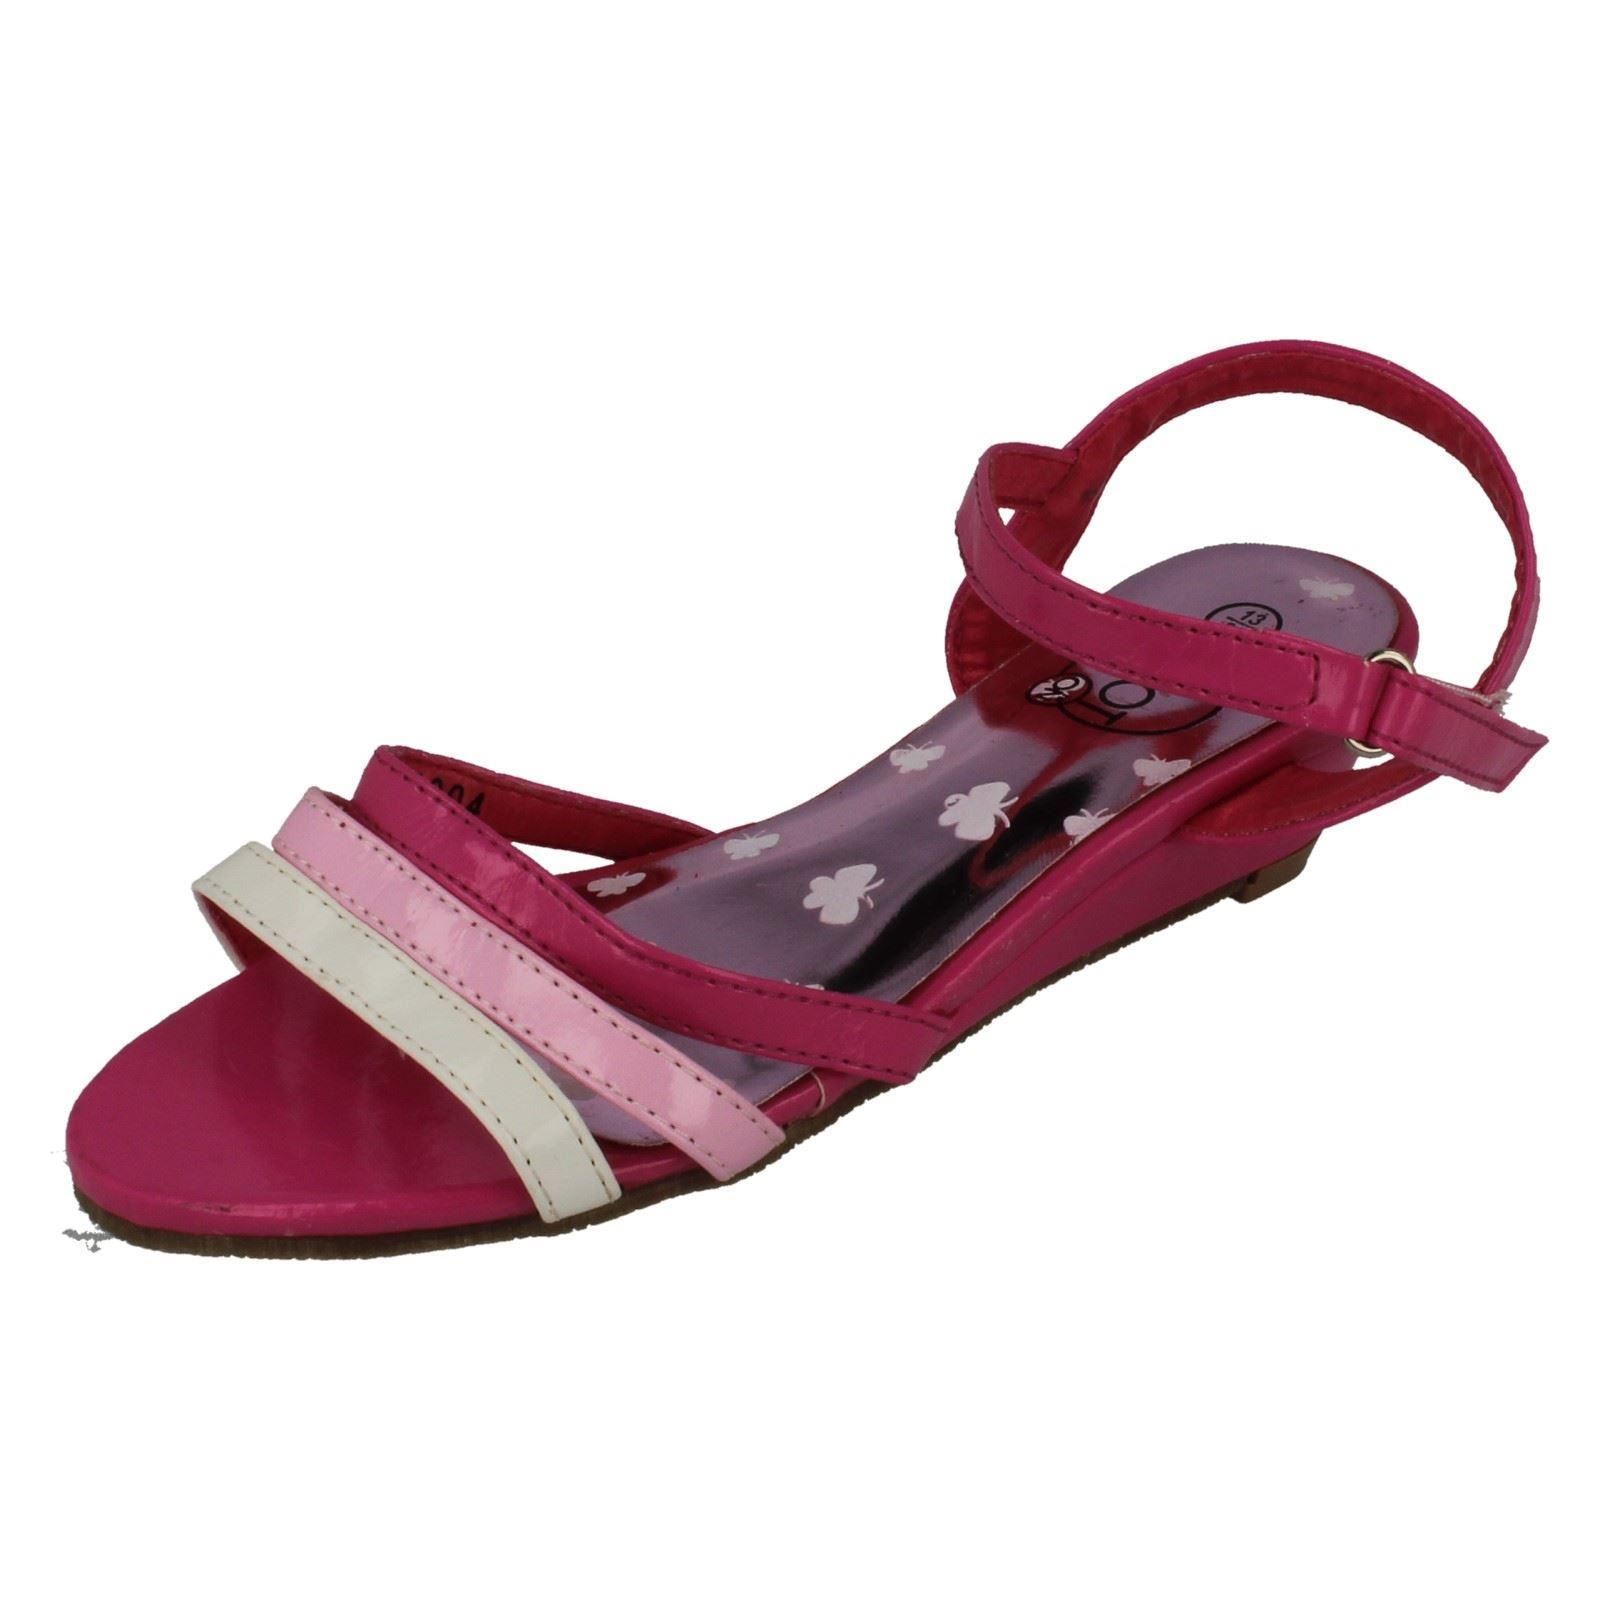 Girls Spot On Ripetape Strap Wedged Ankle Strap Sandal The Style H1004 ~ N